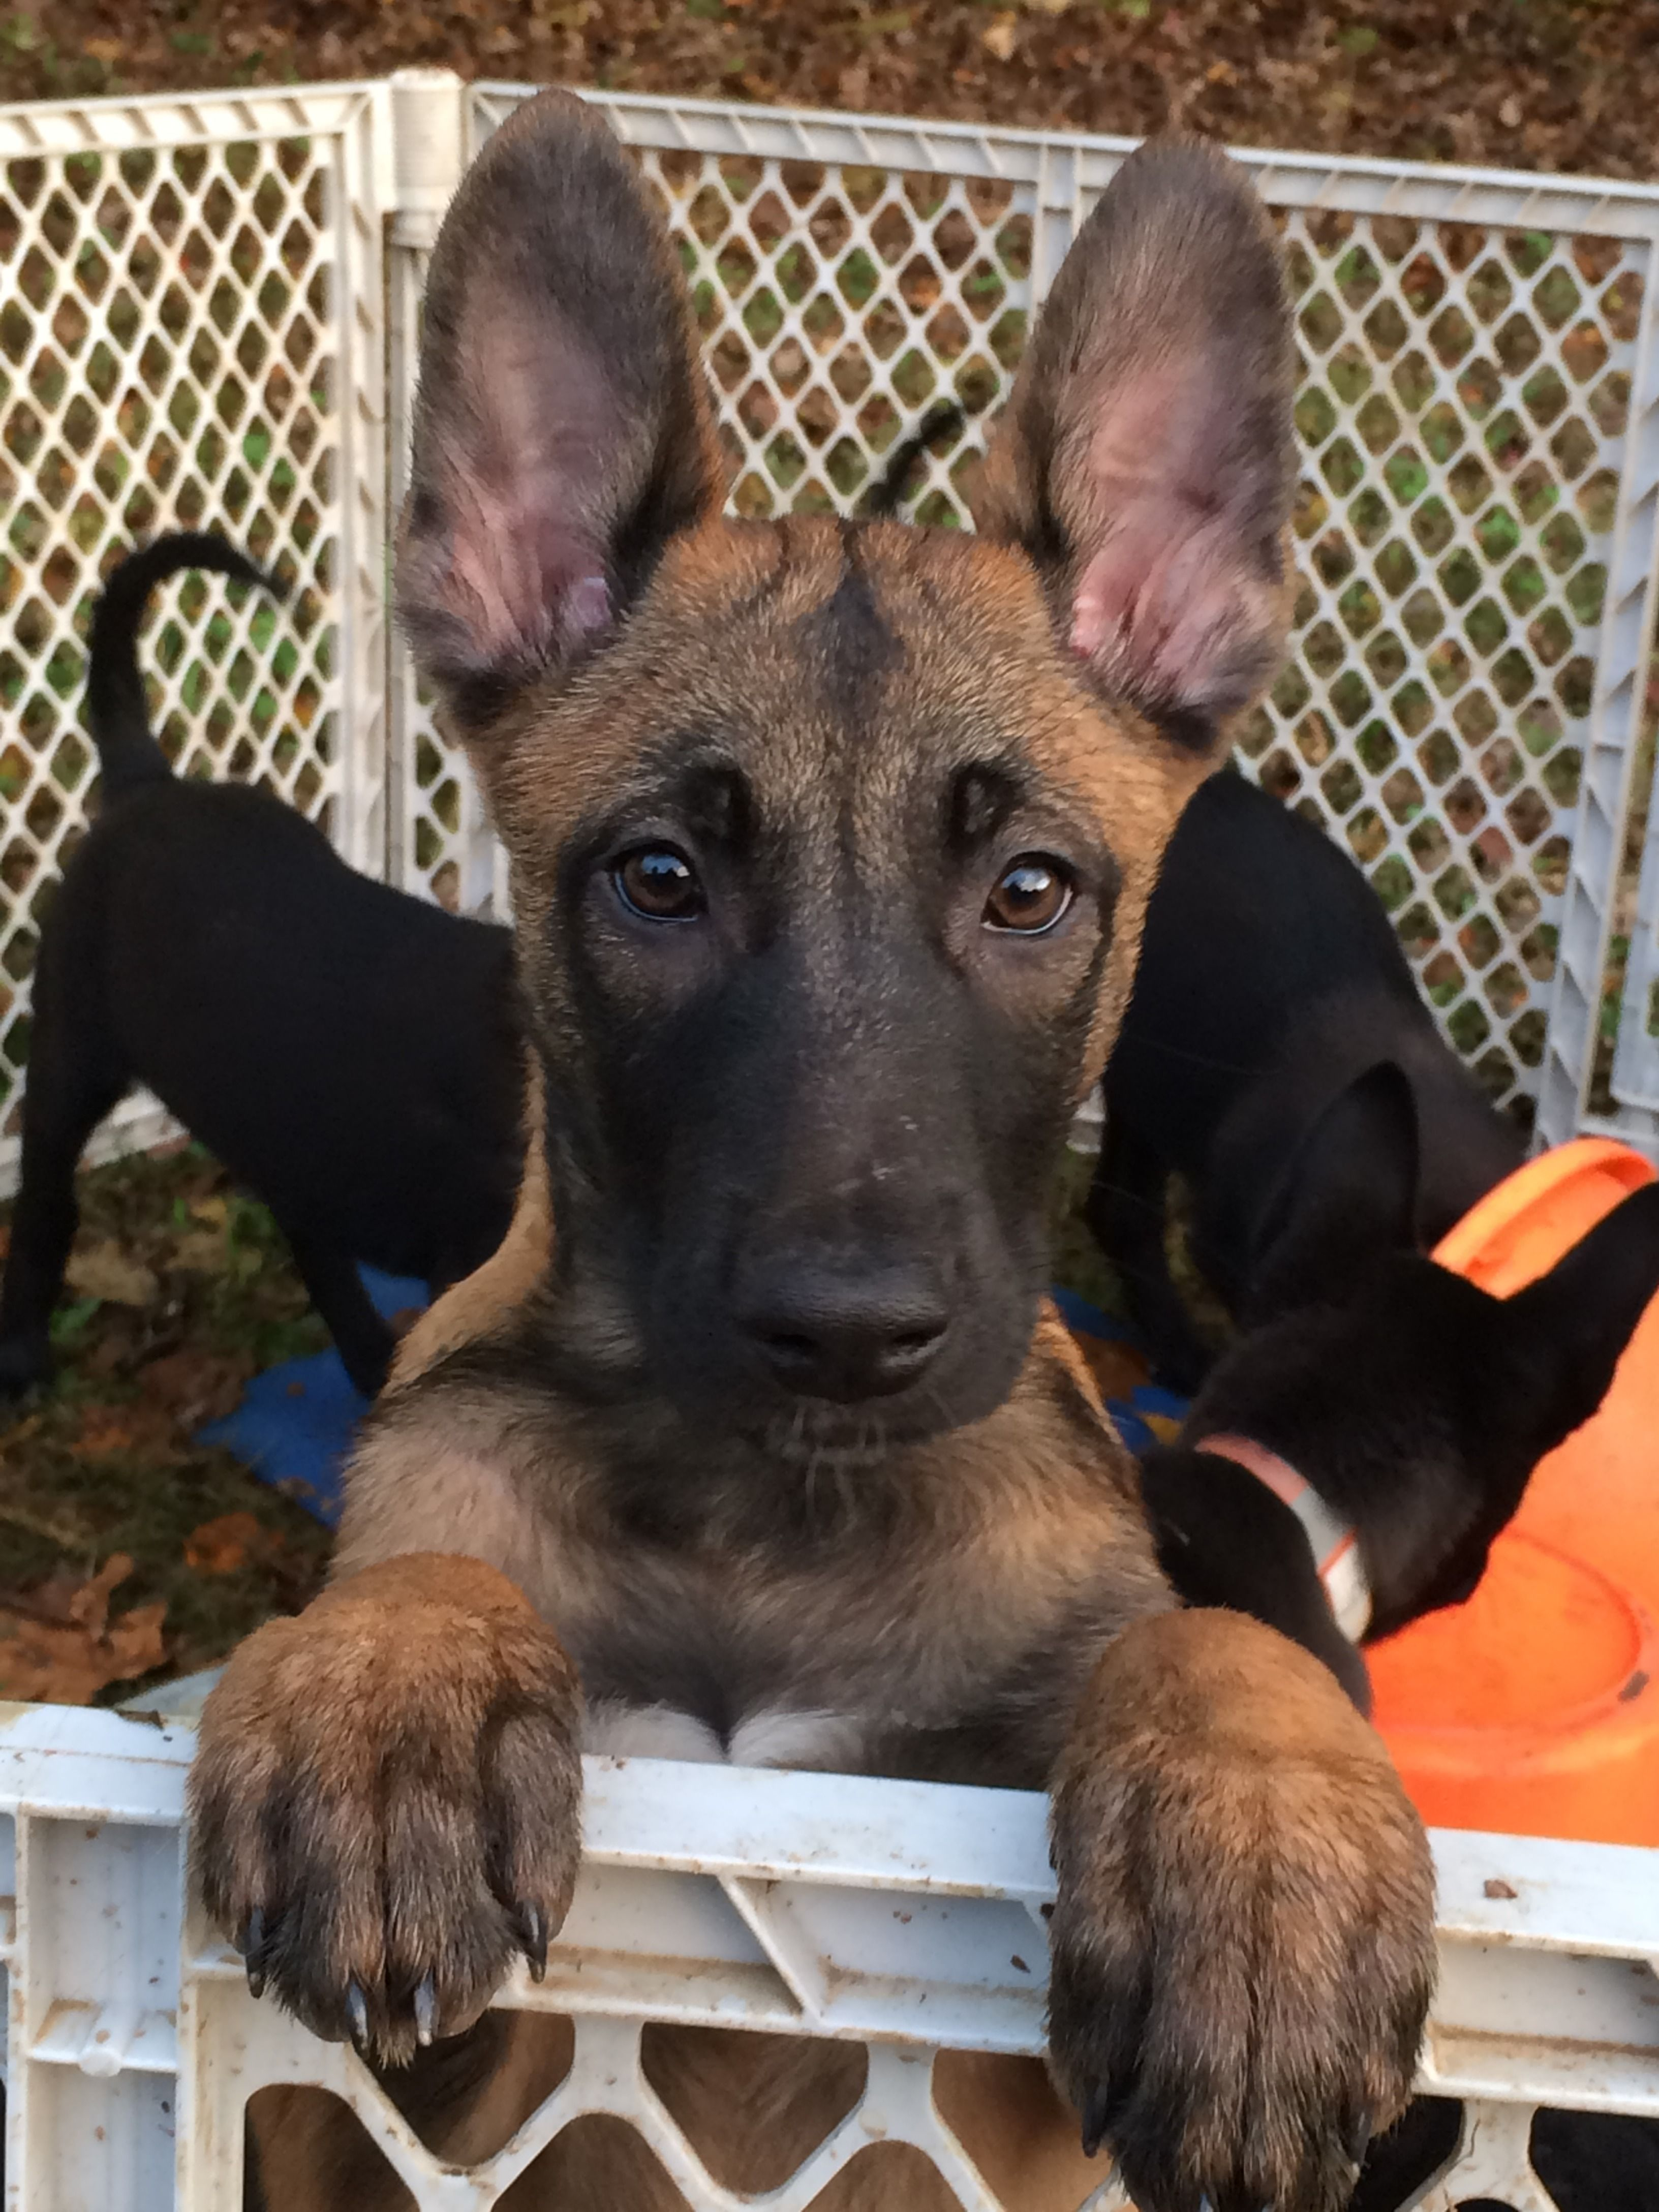 How do I get outta here? | Belgian malinois puppies ...